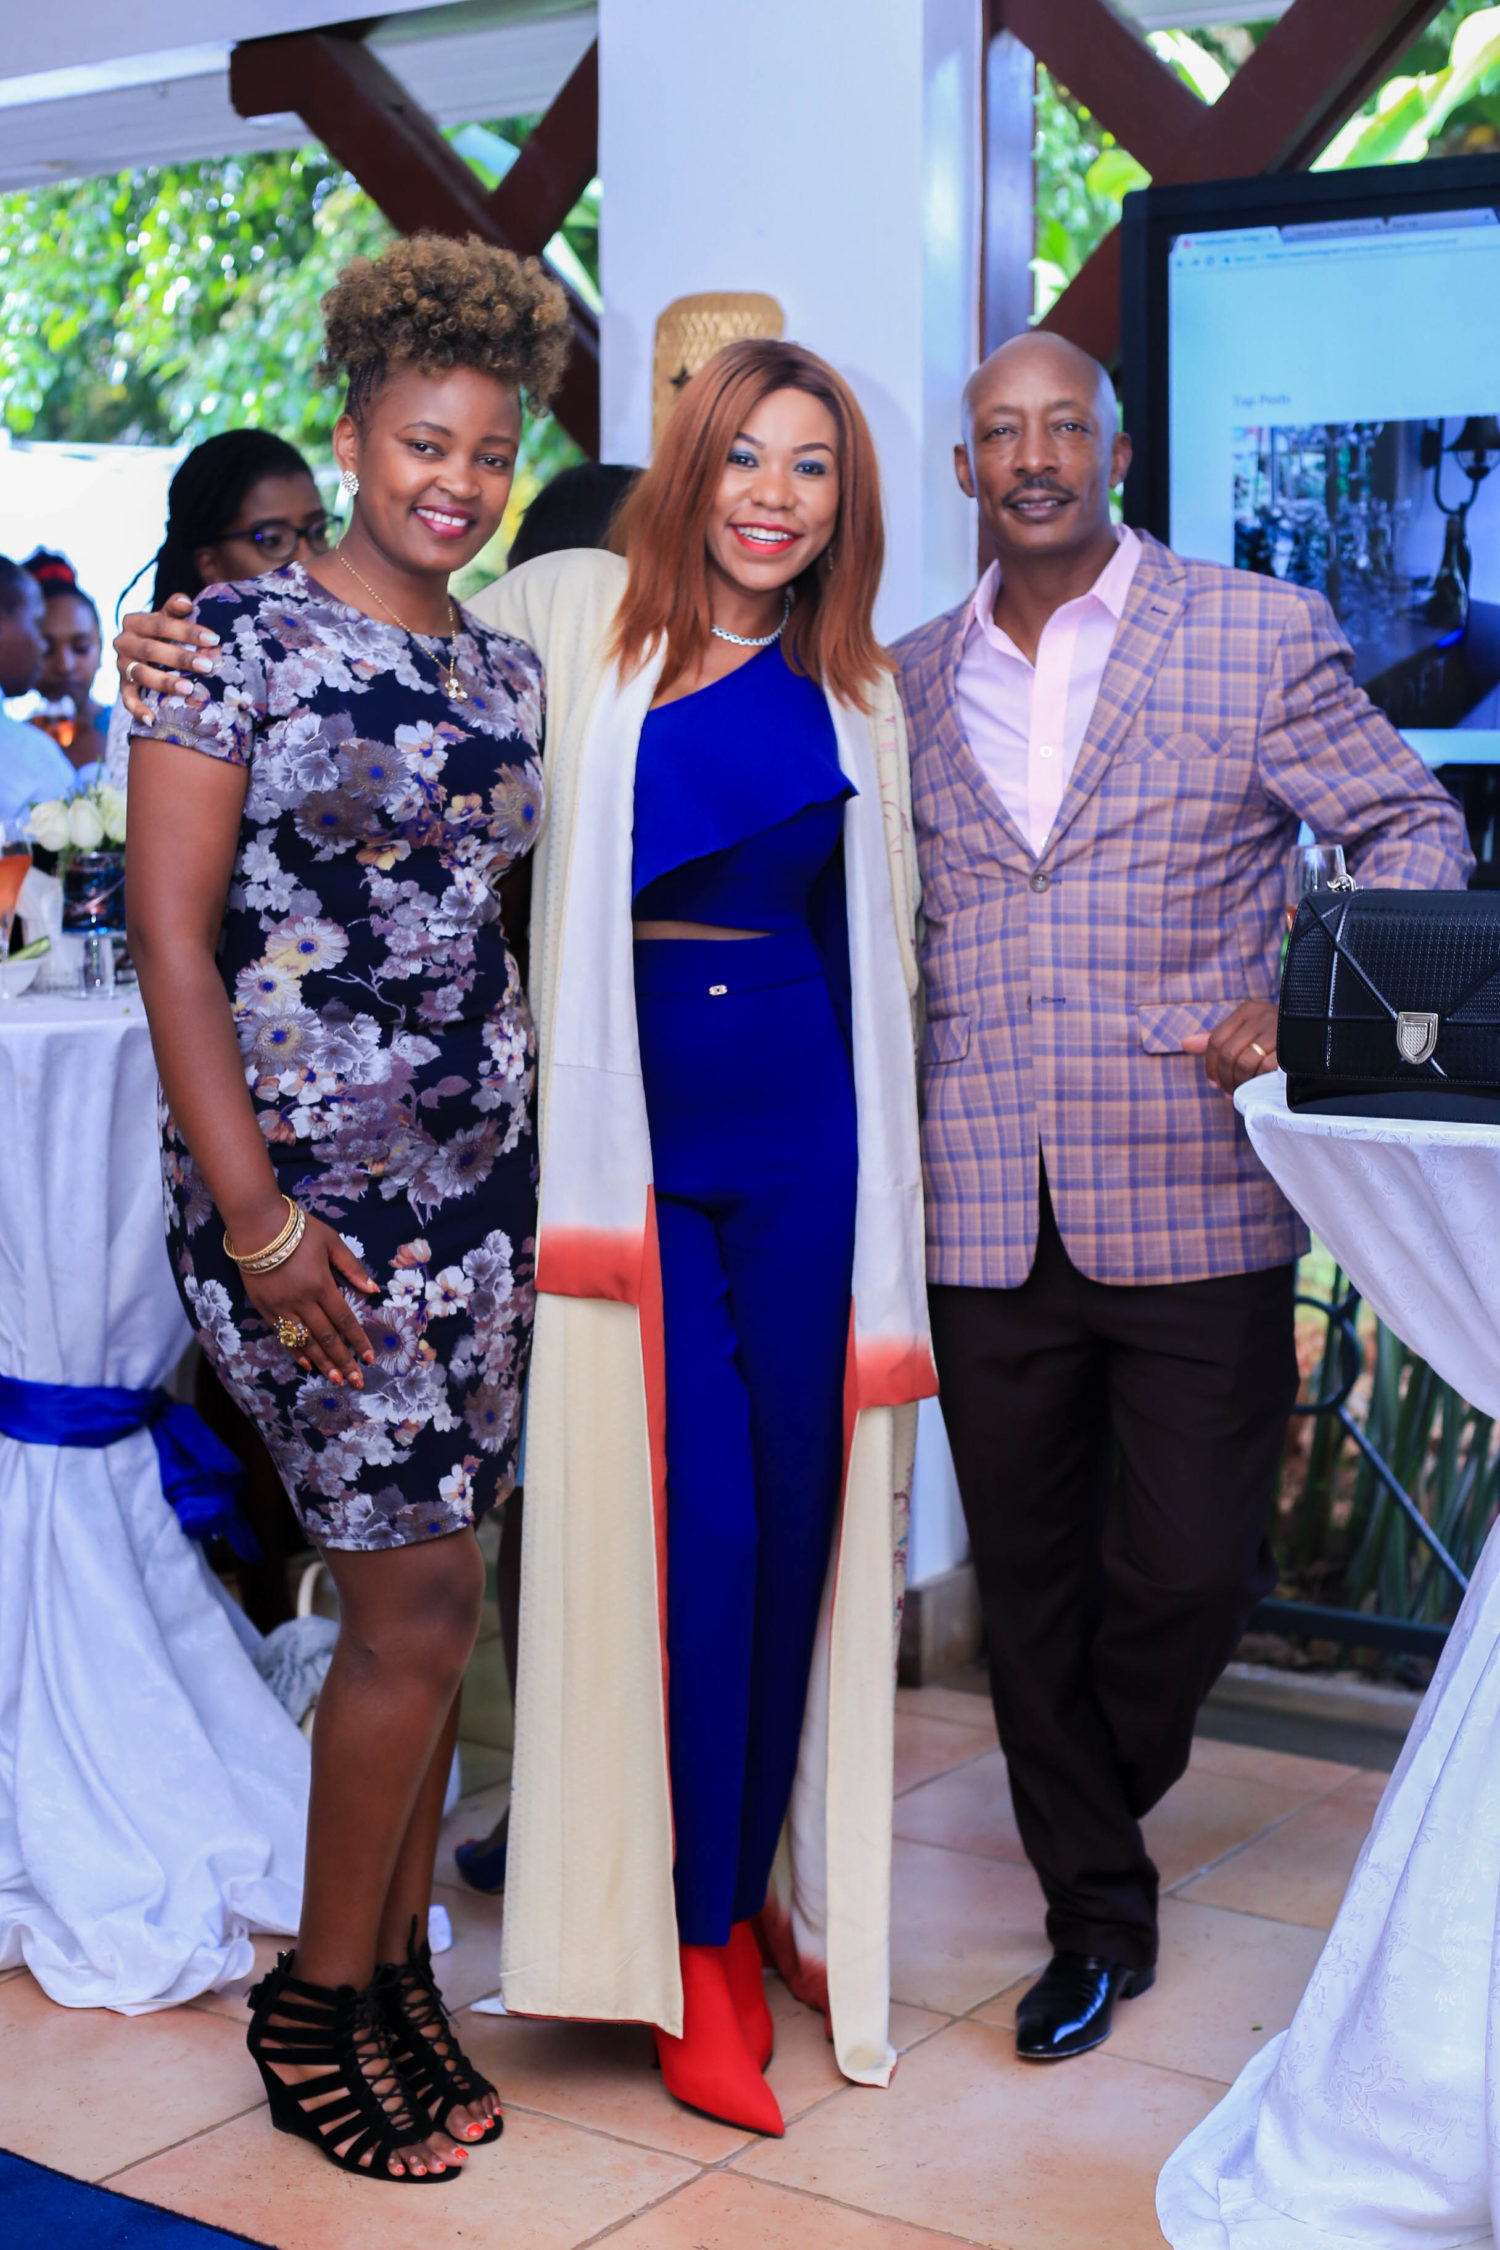 Moët Moments in Nairobi: A Peek Inside the Après Midi Delight Event in Kenya